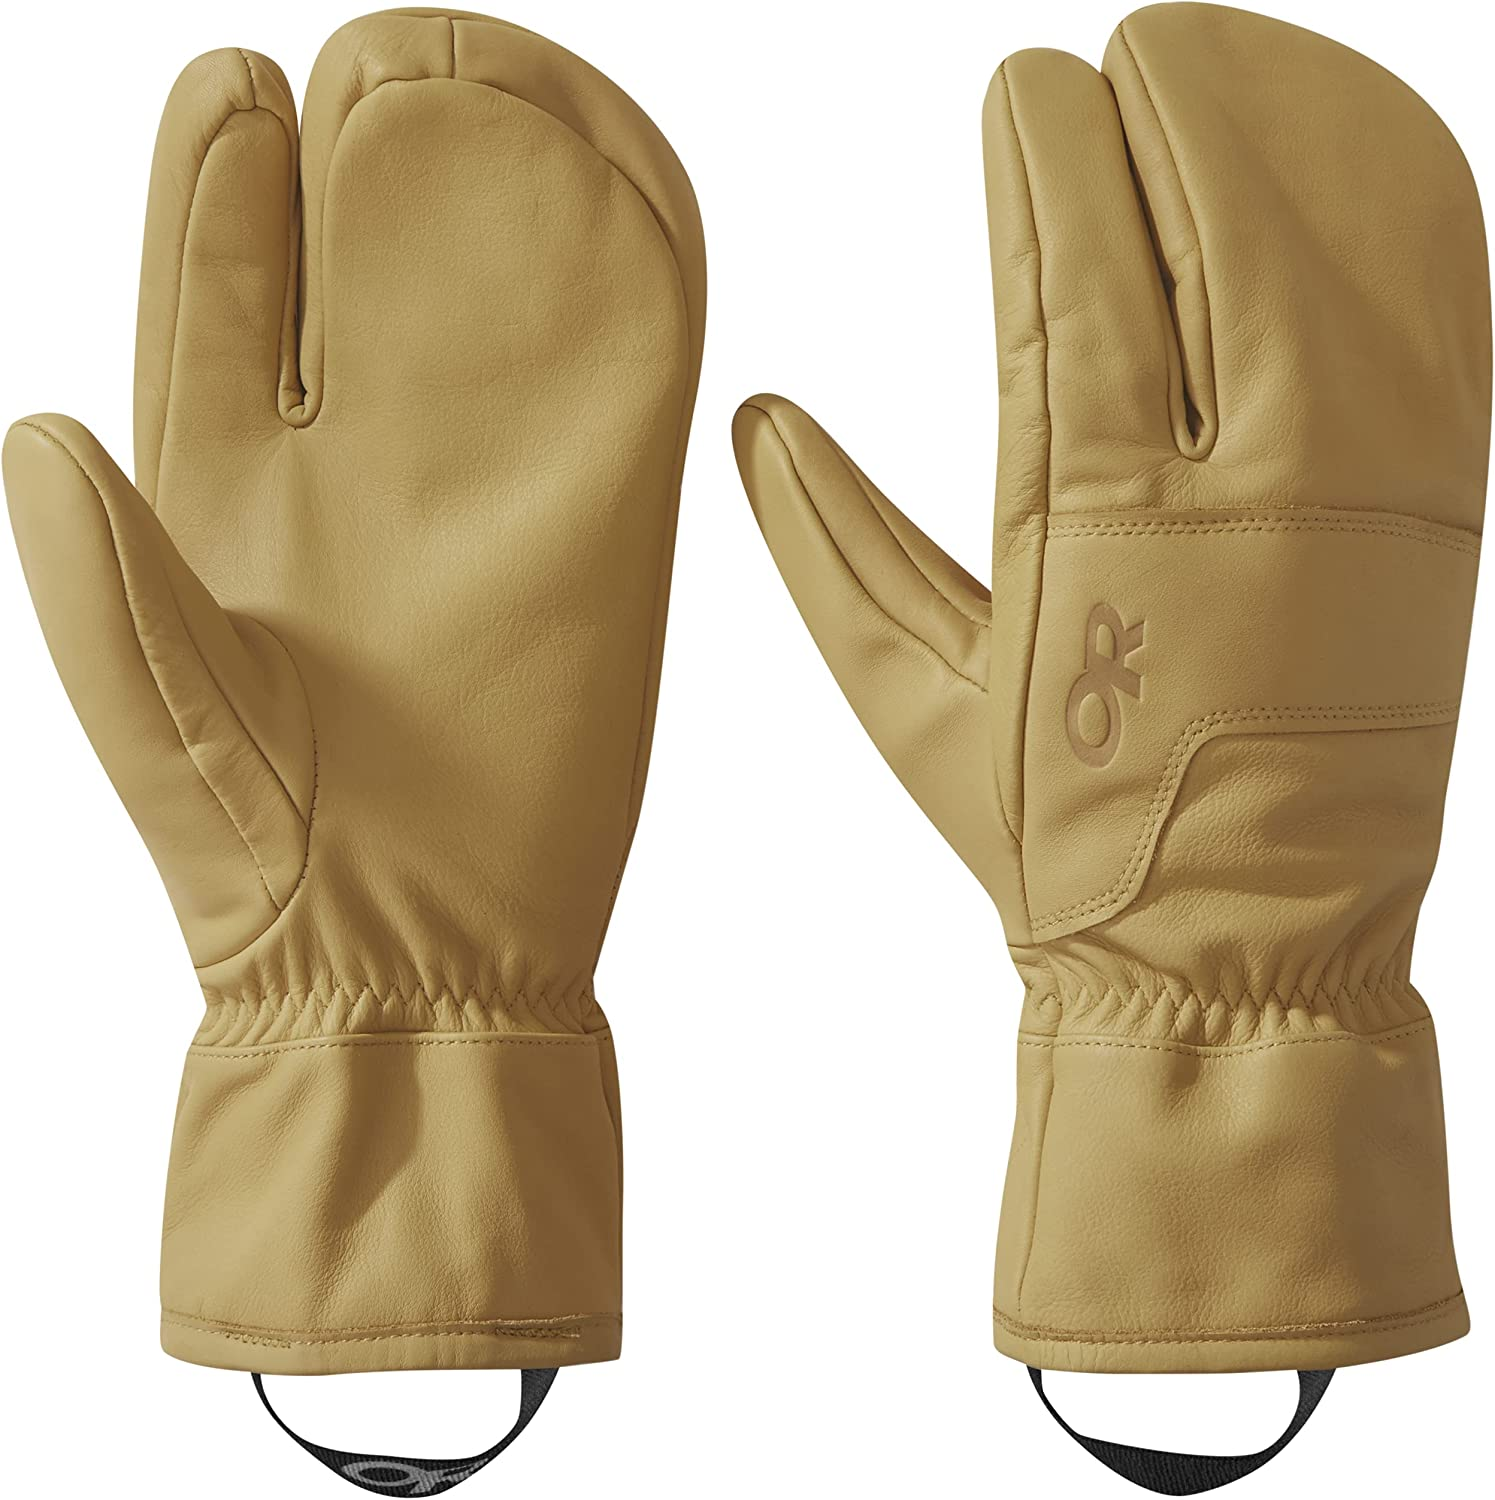 Outdoor Research Aksel 3-Finger Work Gloves